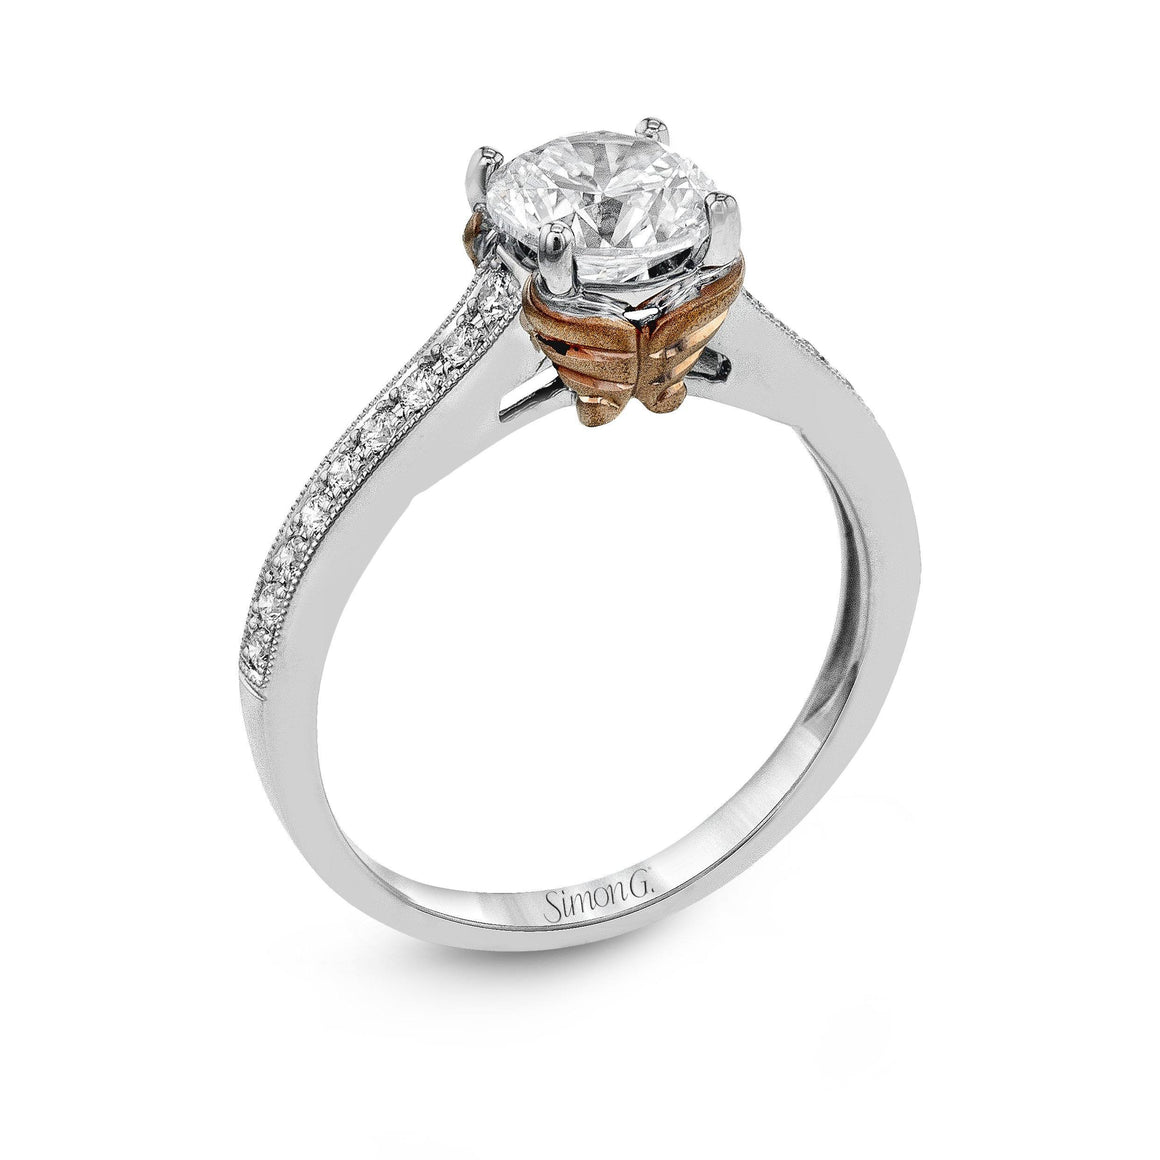 Simon G - NR493, Engagement Ring, Simon G - Birmingham Jewelry